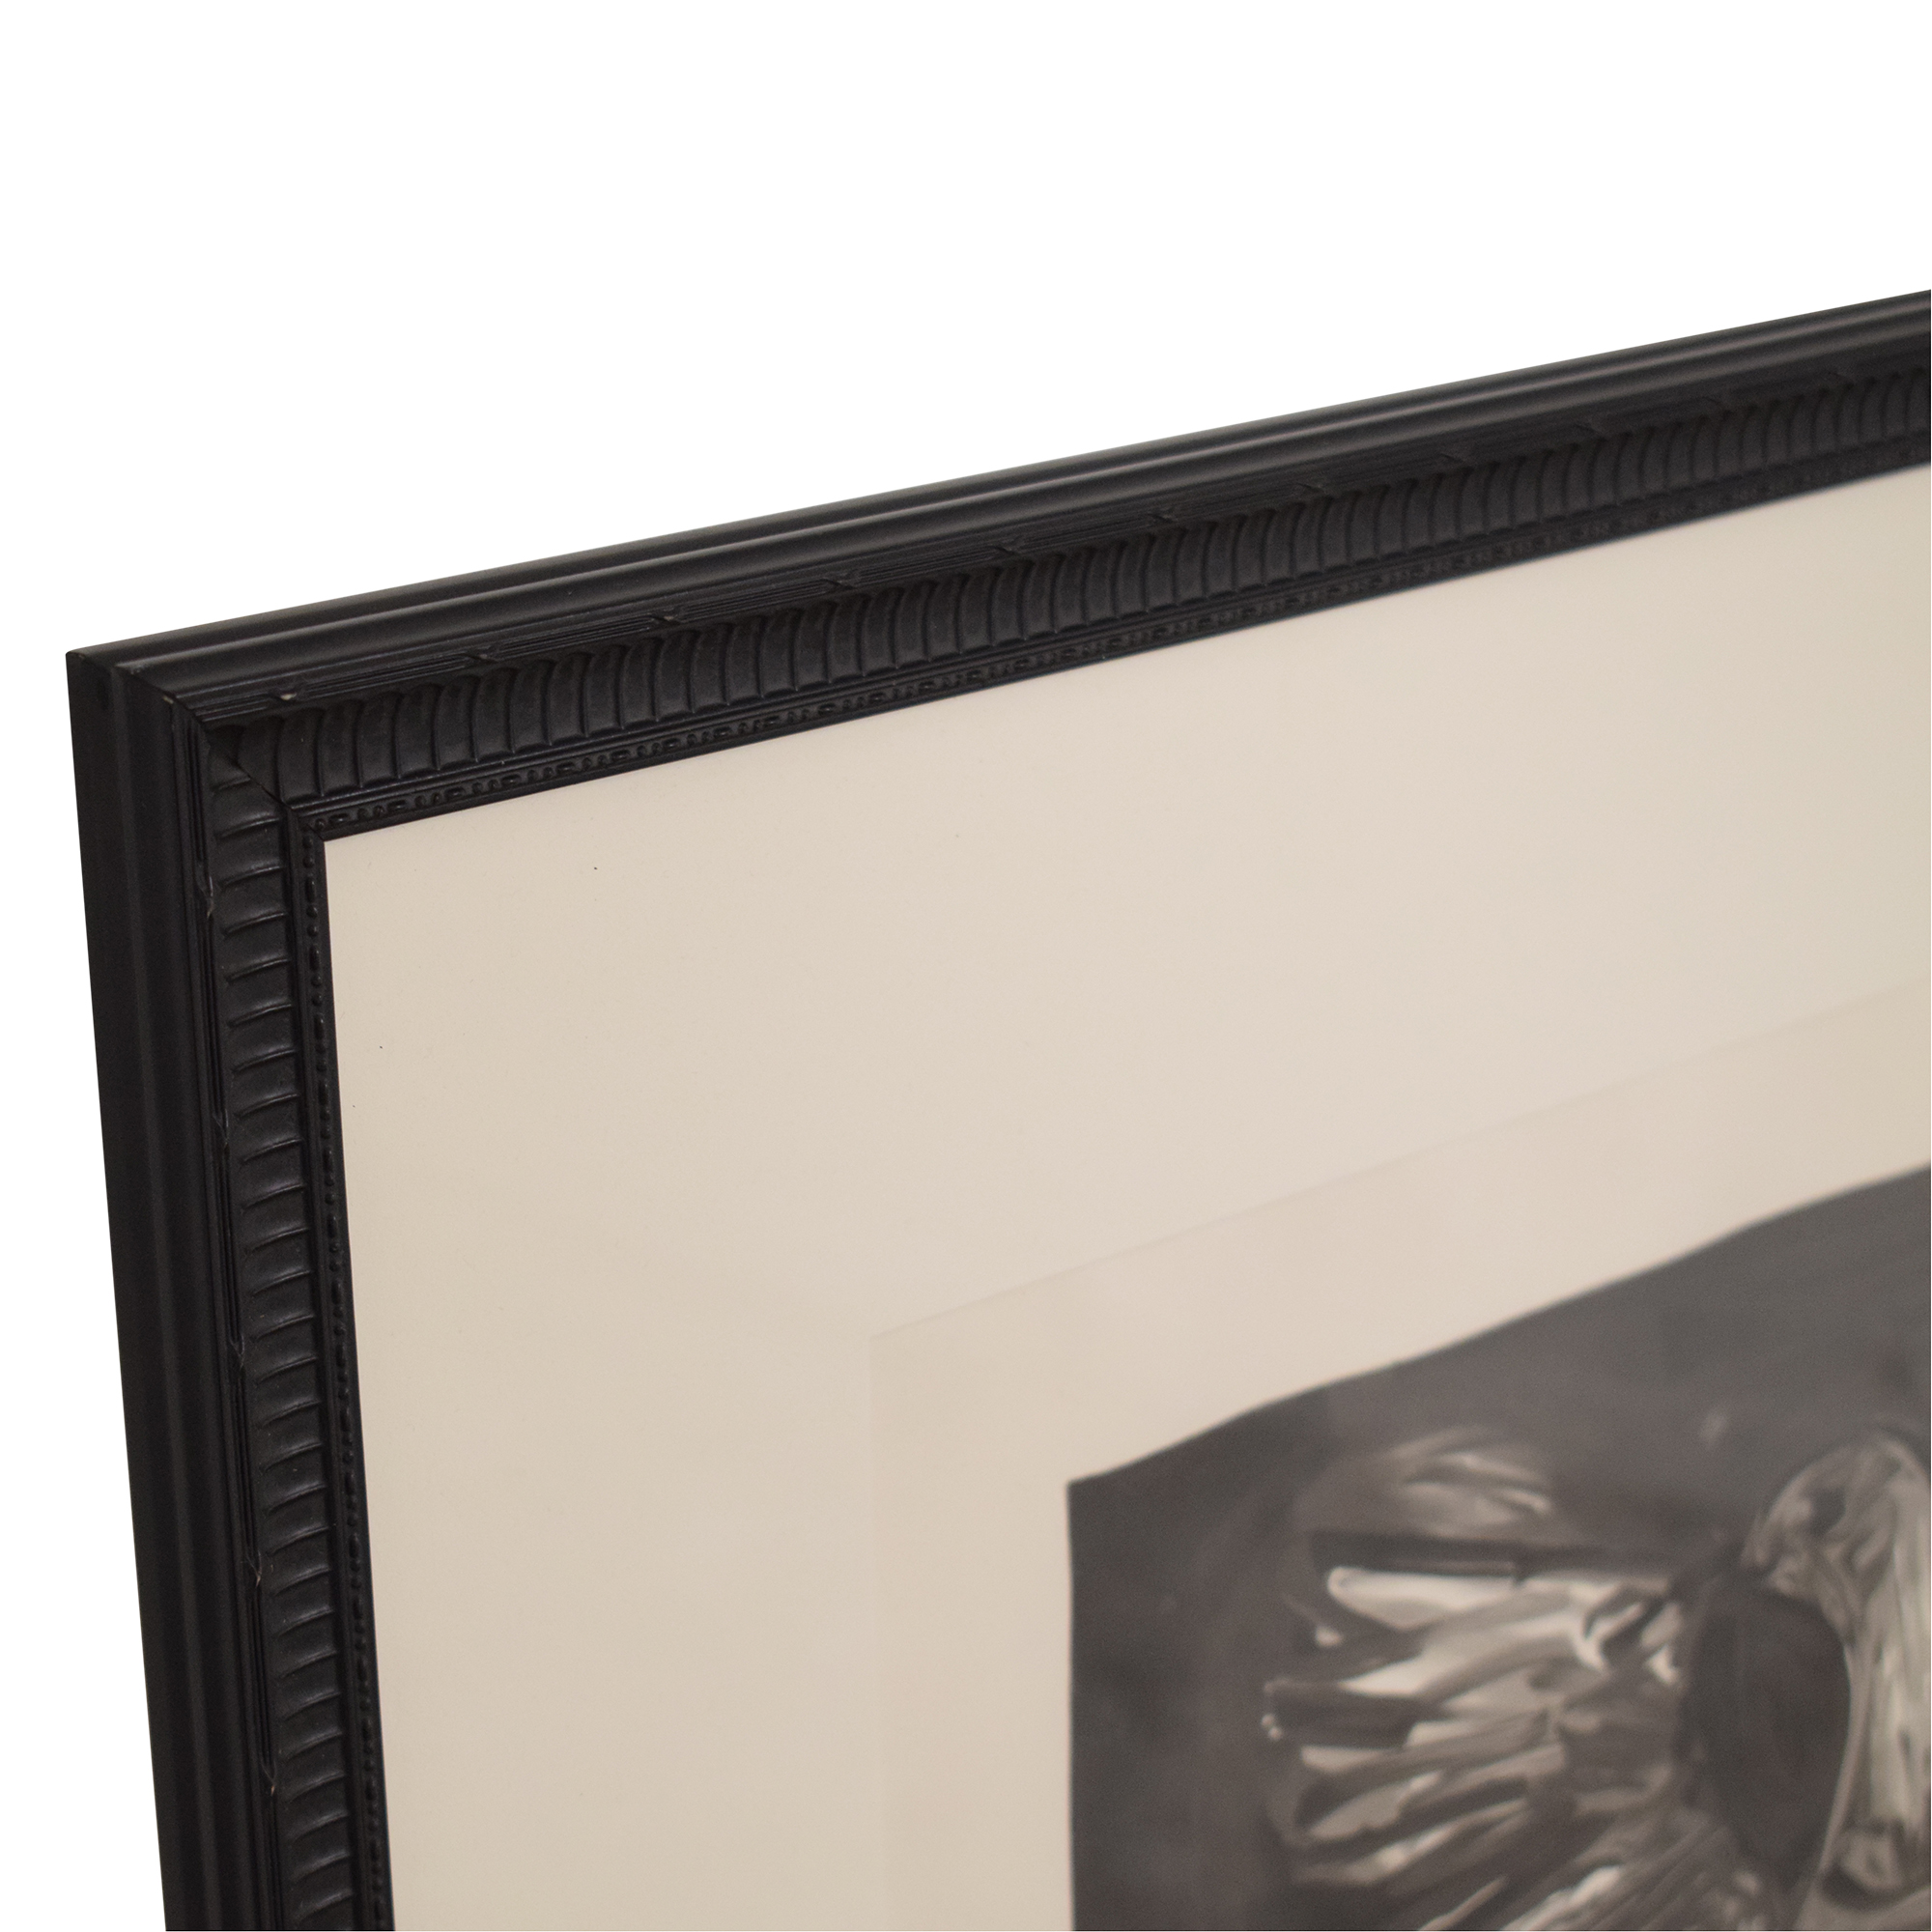 Pablo Picasso Deux Pigeons Framed Lithograph price